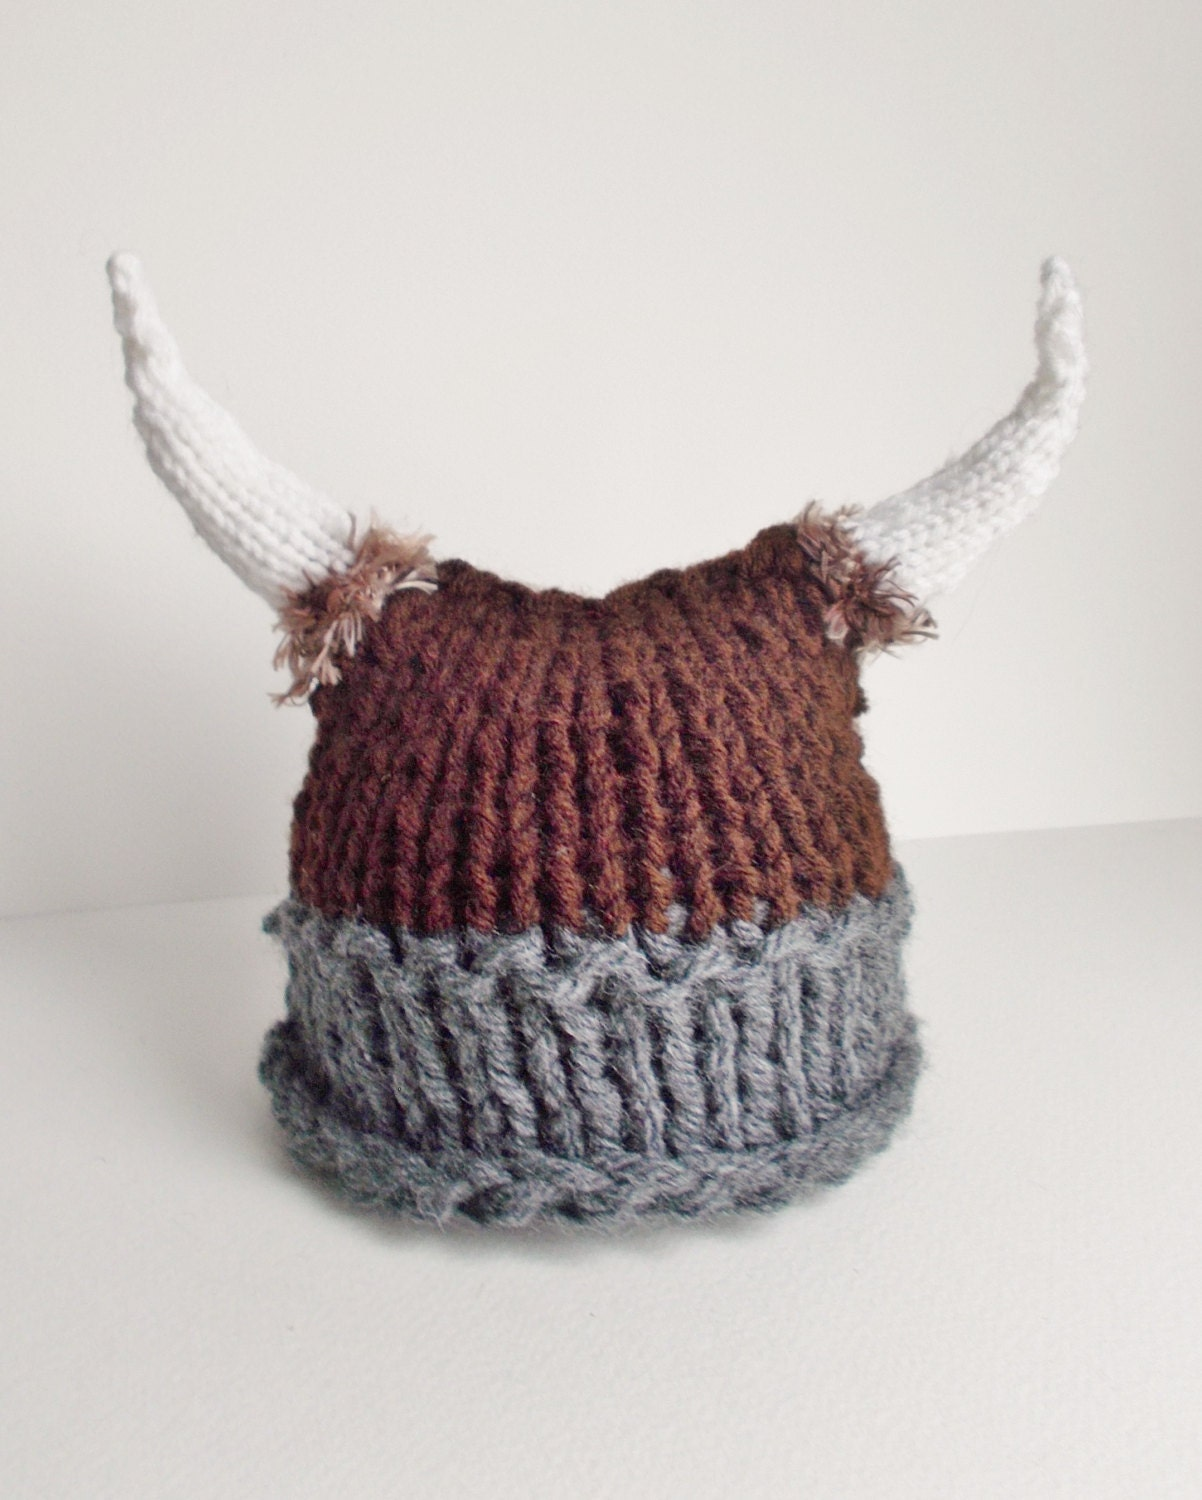 Baby Viking Hat Knitted Viking Hat Knit Viking Hat with